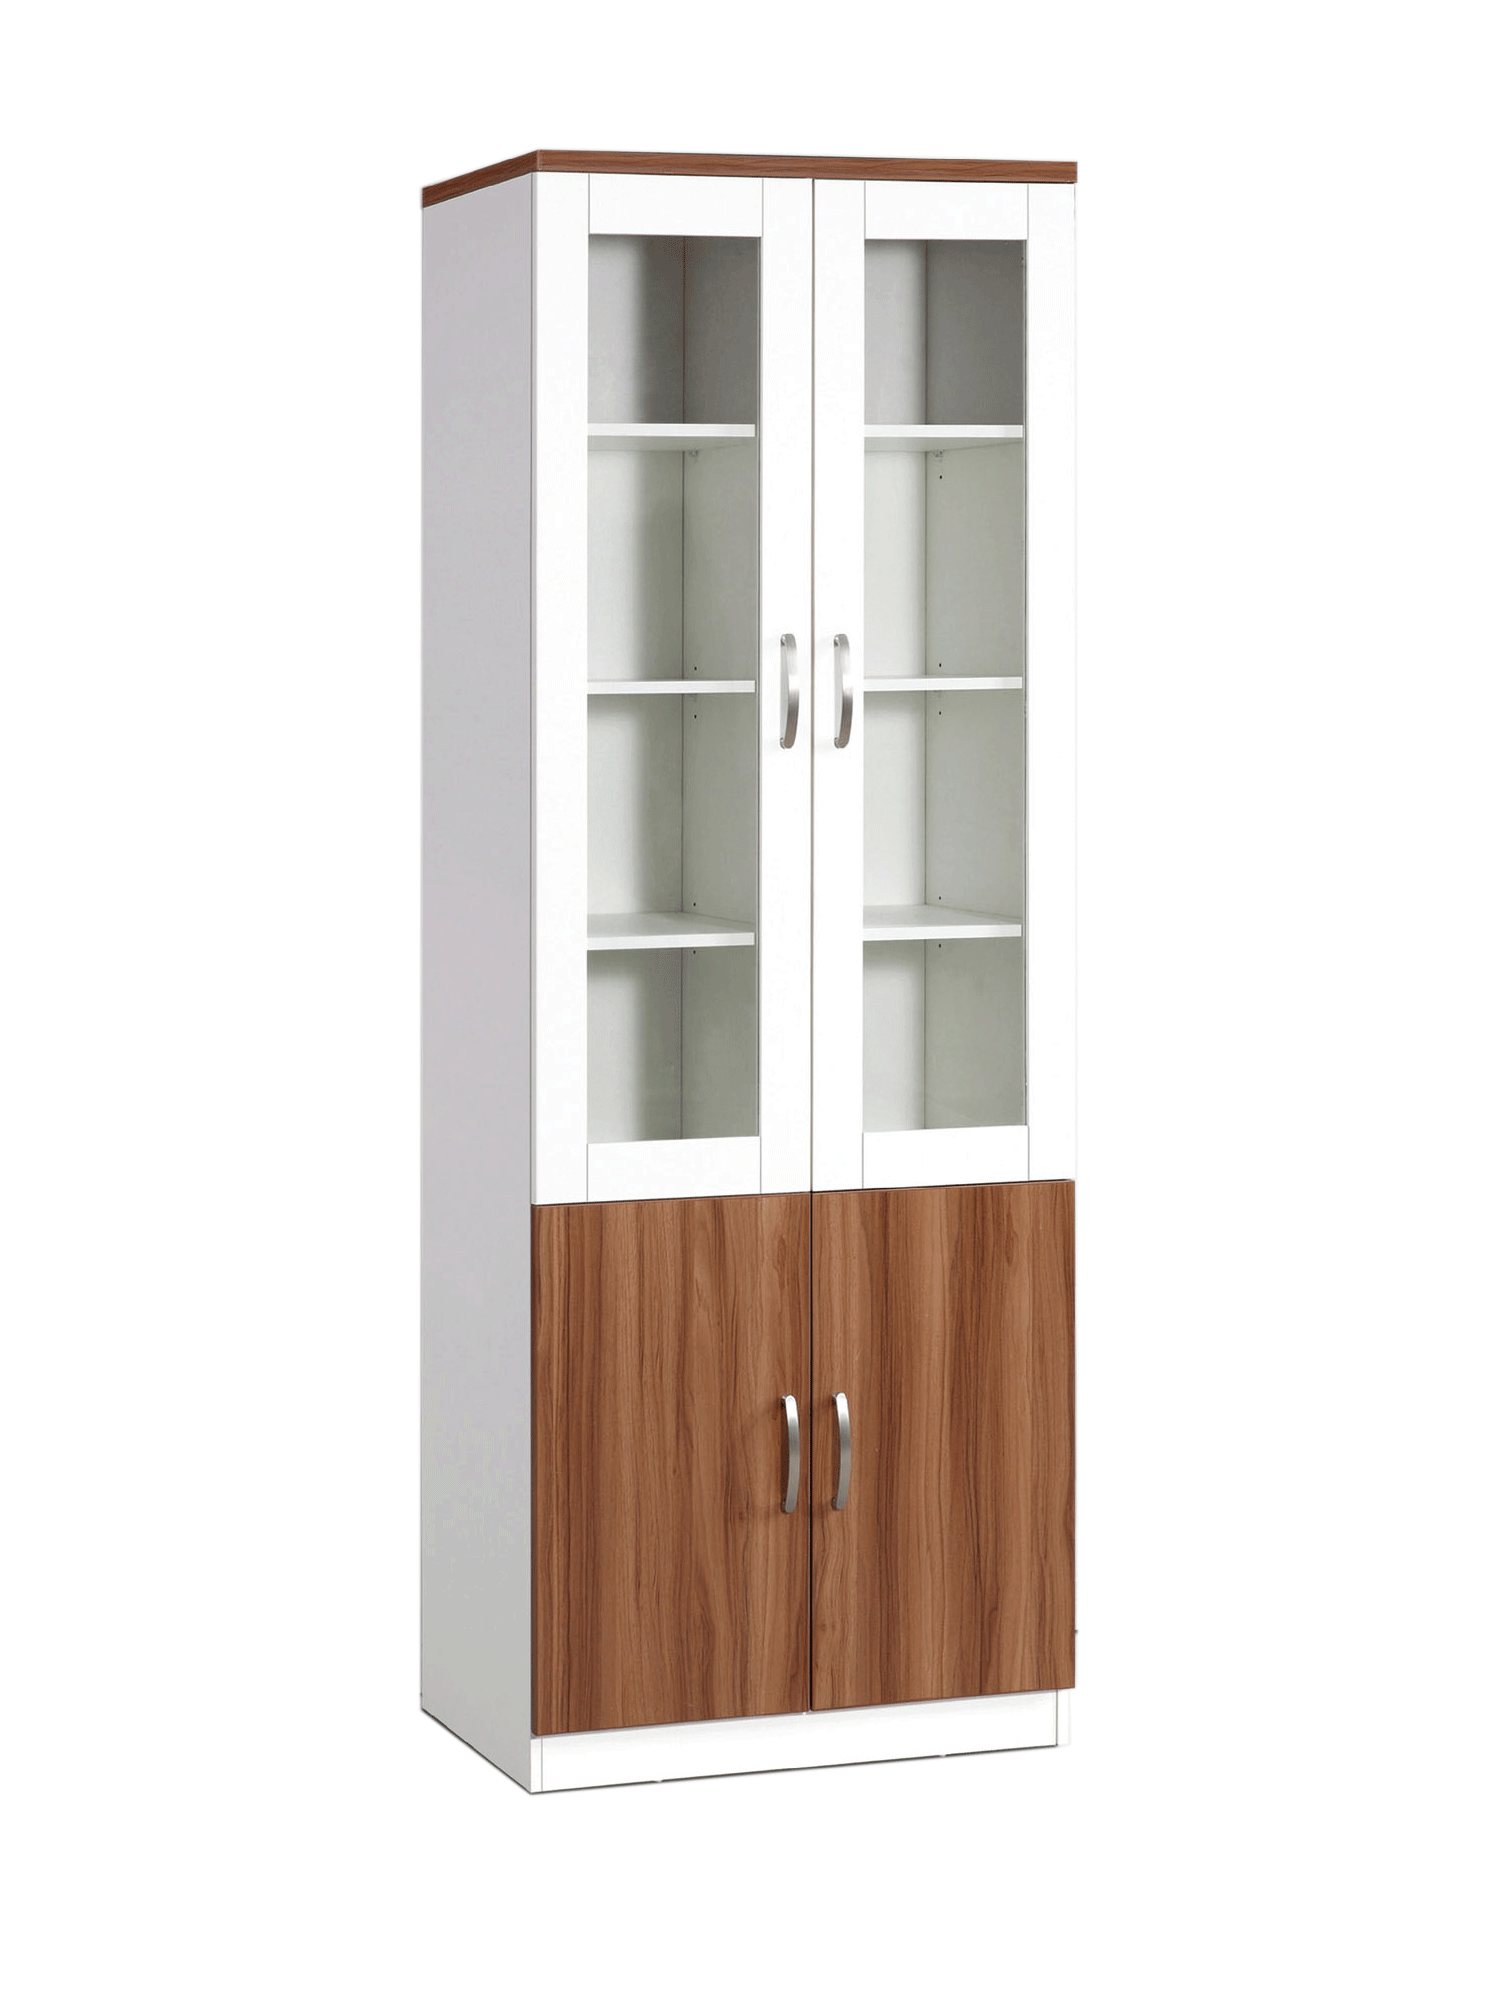 Bianca Glass Display Twin Hinged Doors Cabinet White Oak World Mall Cabinets